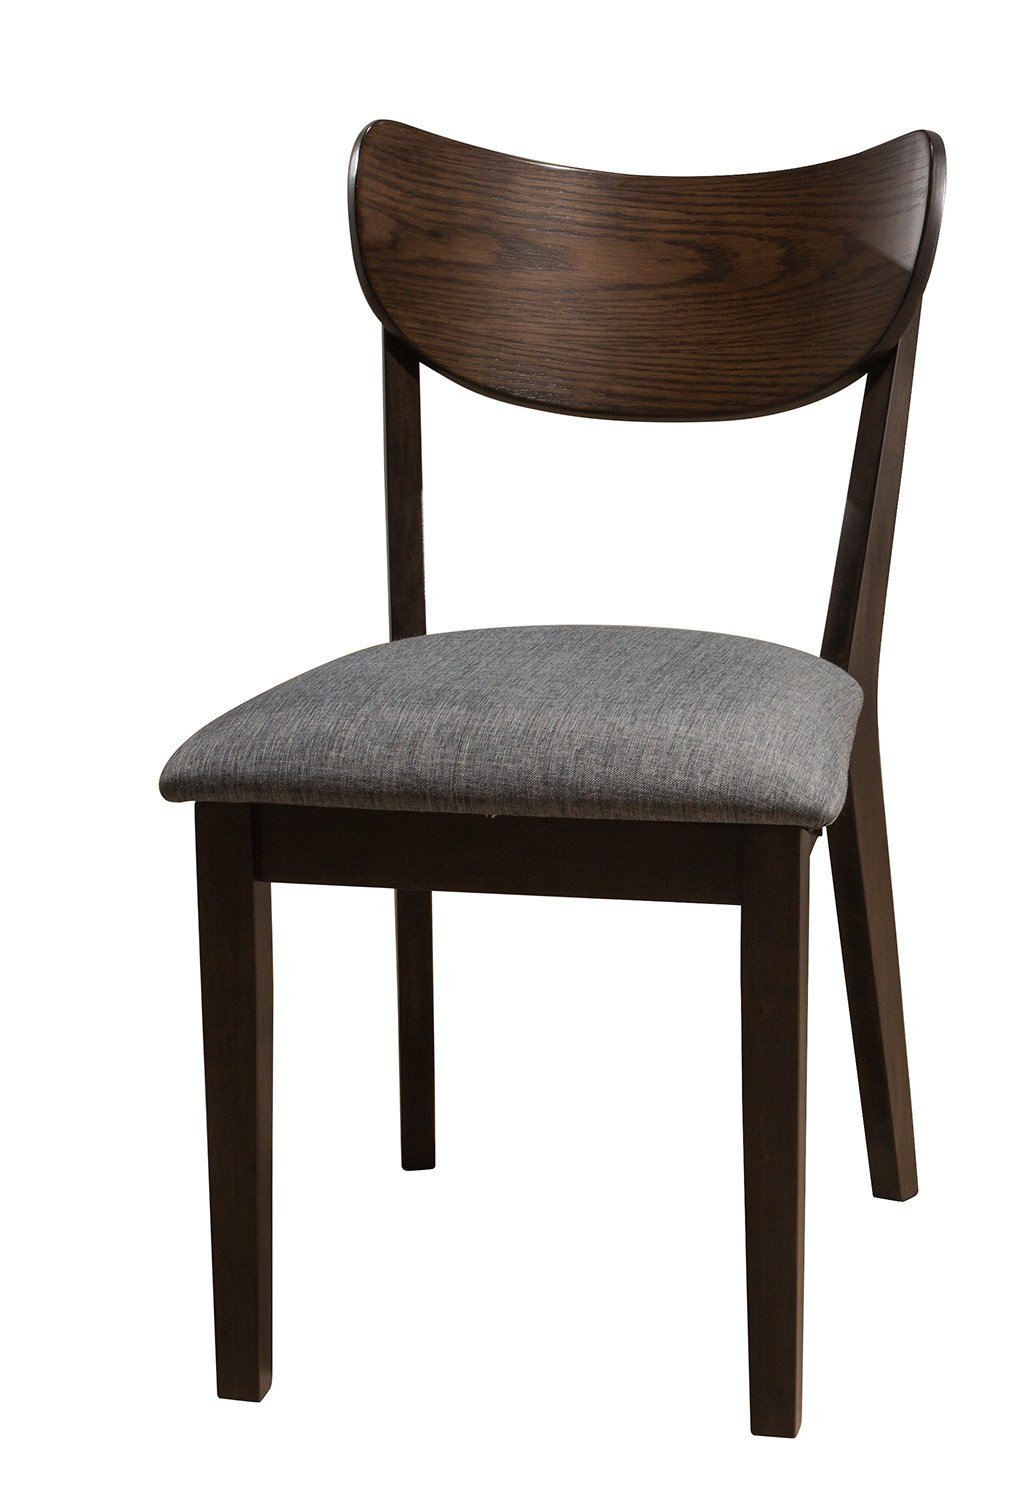 Hillsdale San Marino Midmod Dining Side Chair - Chestnut/Gray Fabric- Set of 2